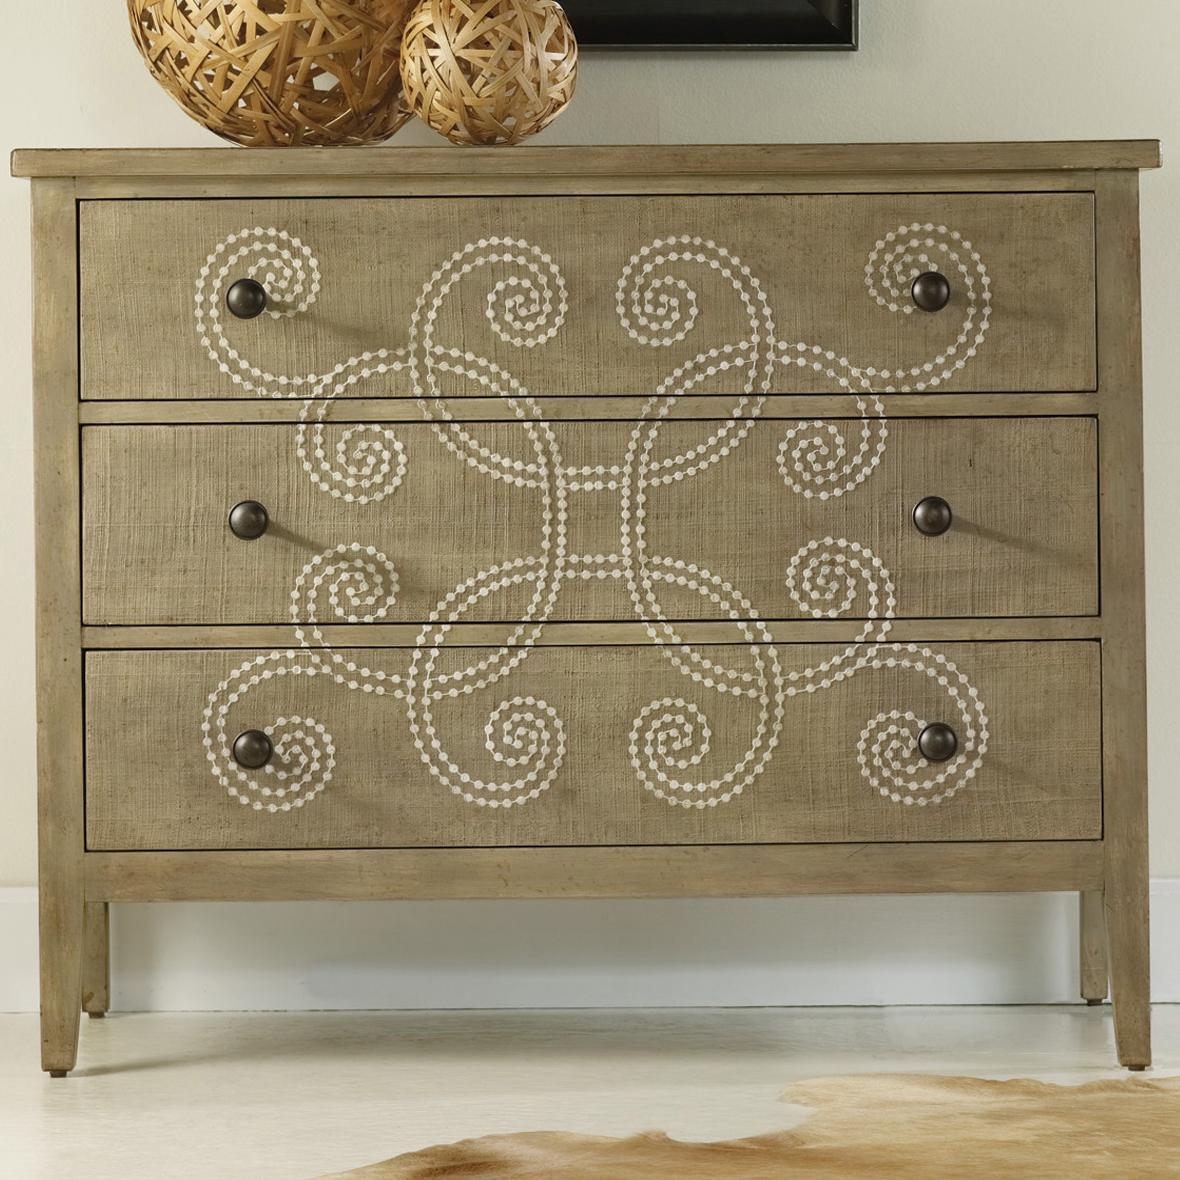 hooker furniture melange three drawer curlacue occasional accent products color painted tables chests chest with decorative raffia paint accents teal blue table distressed white